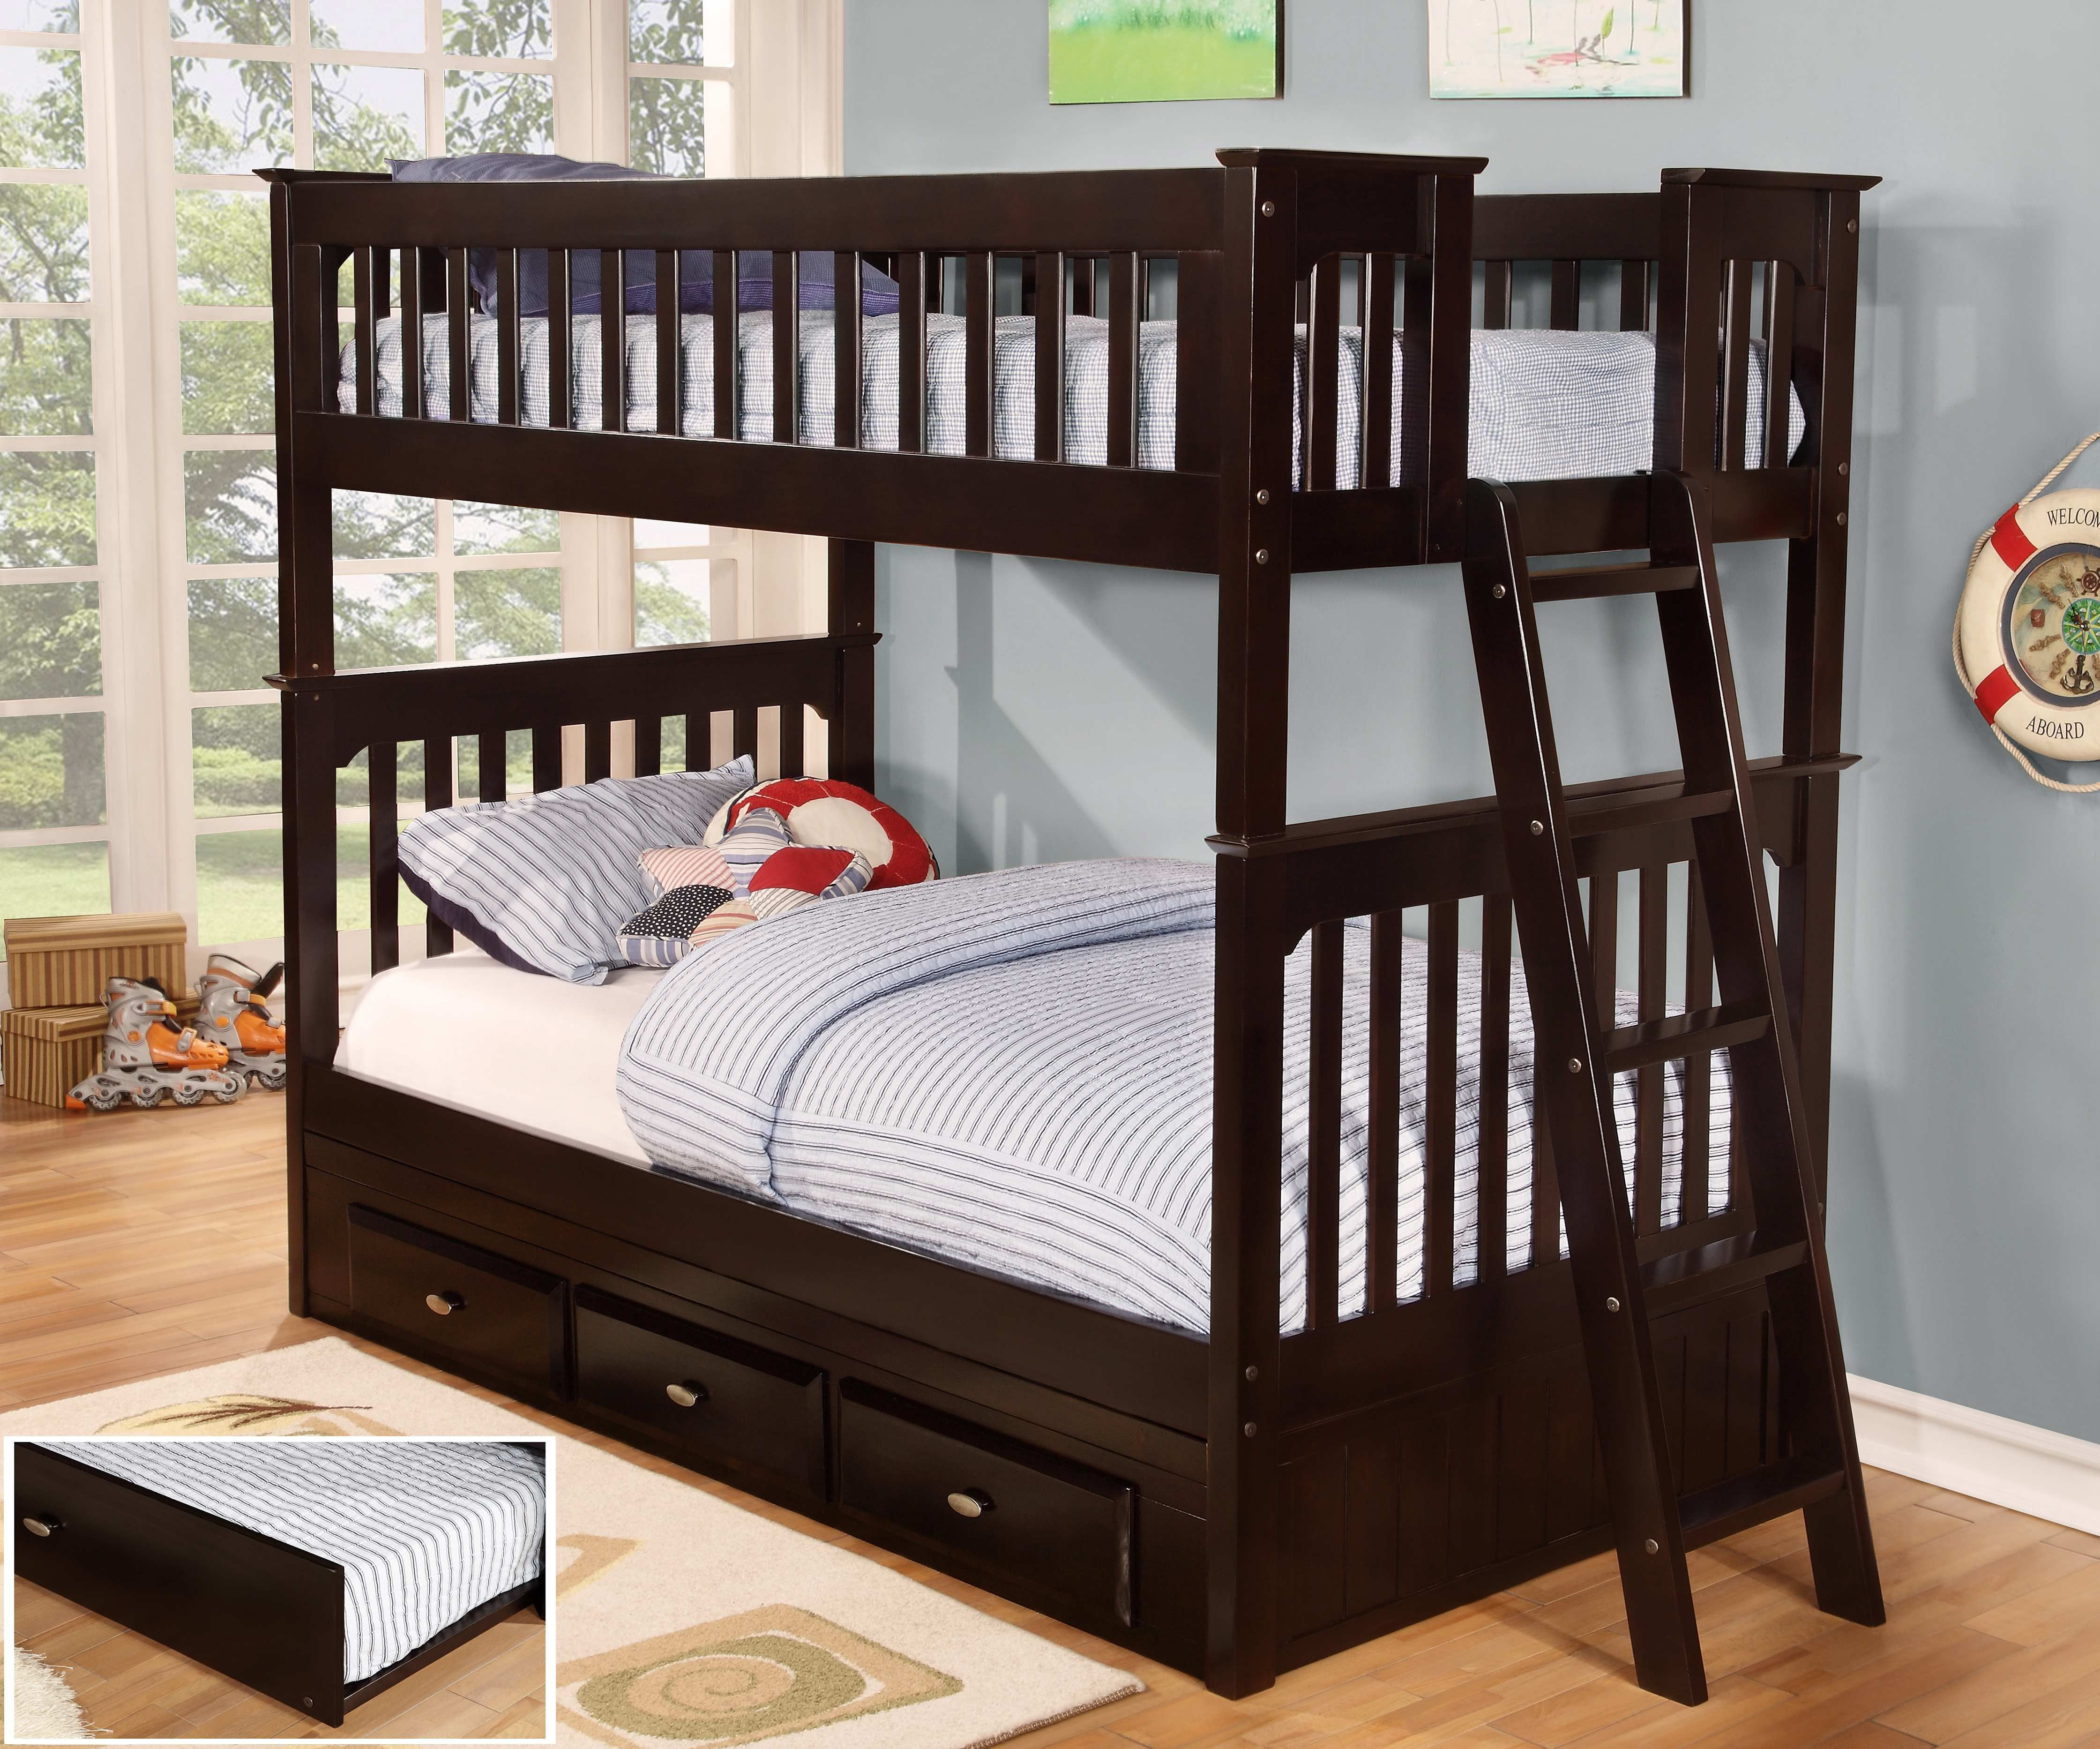 Discovery World Furniture Twin over Twin Espresso Bunk Beds | Twin